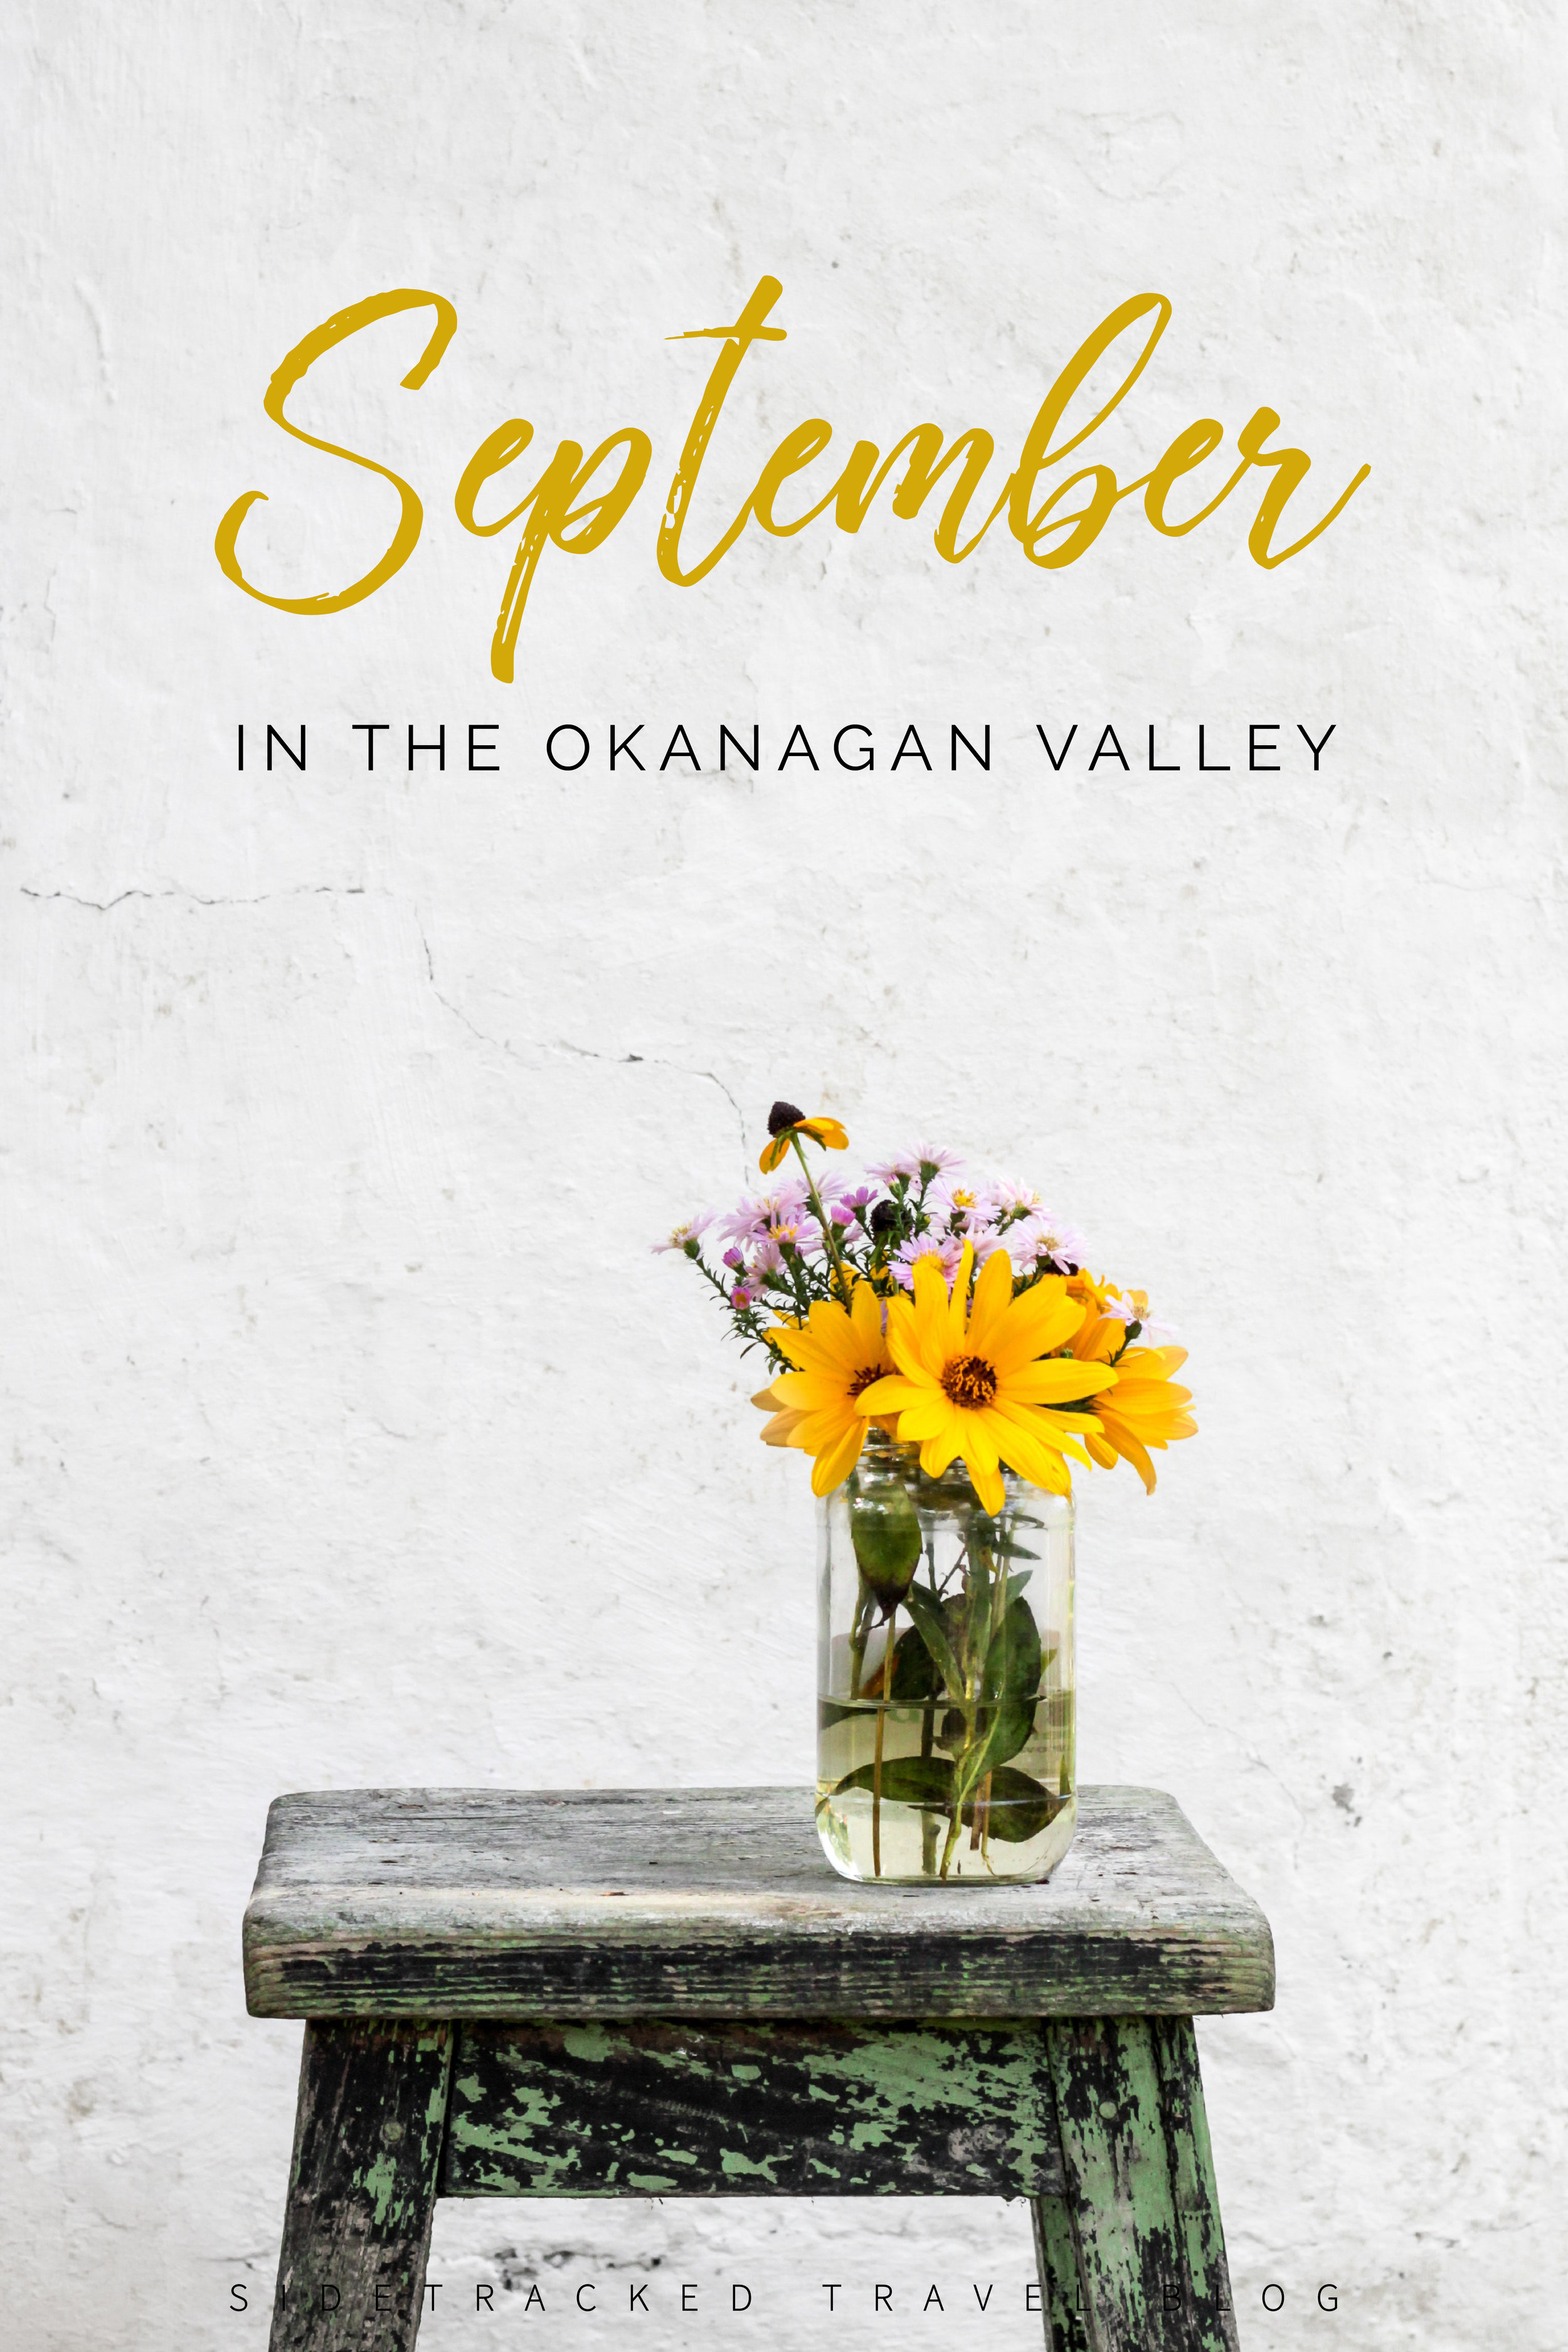 Looking for something to do in the Okanagan Valley this September? In this article you'll find a curated list of unique activities, event happenings, and other fun things taking place from now until the end of the month.